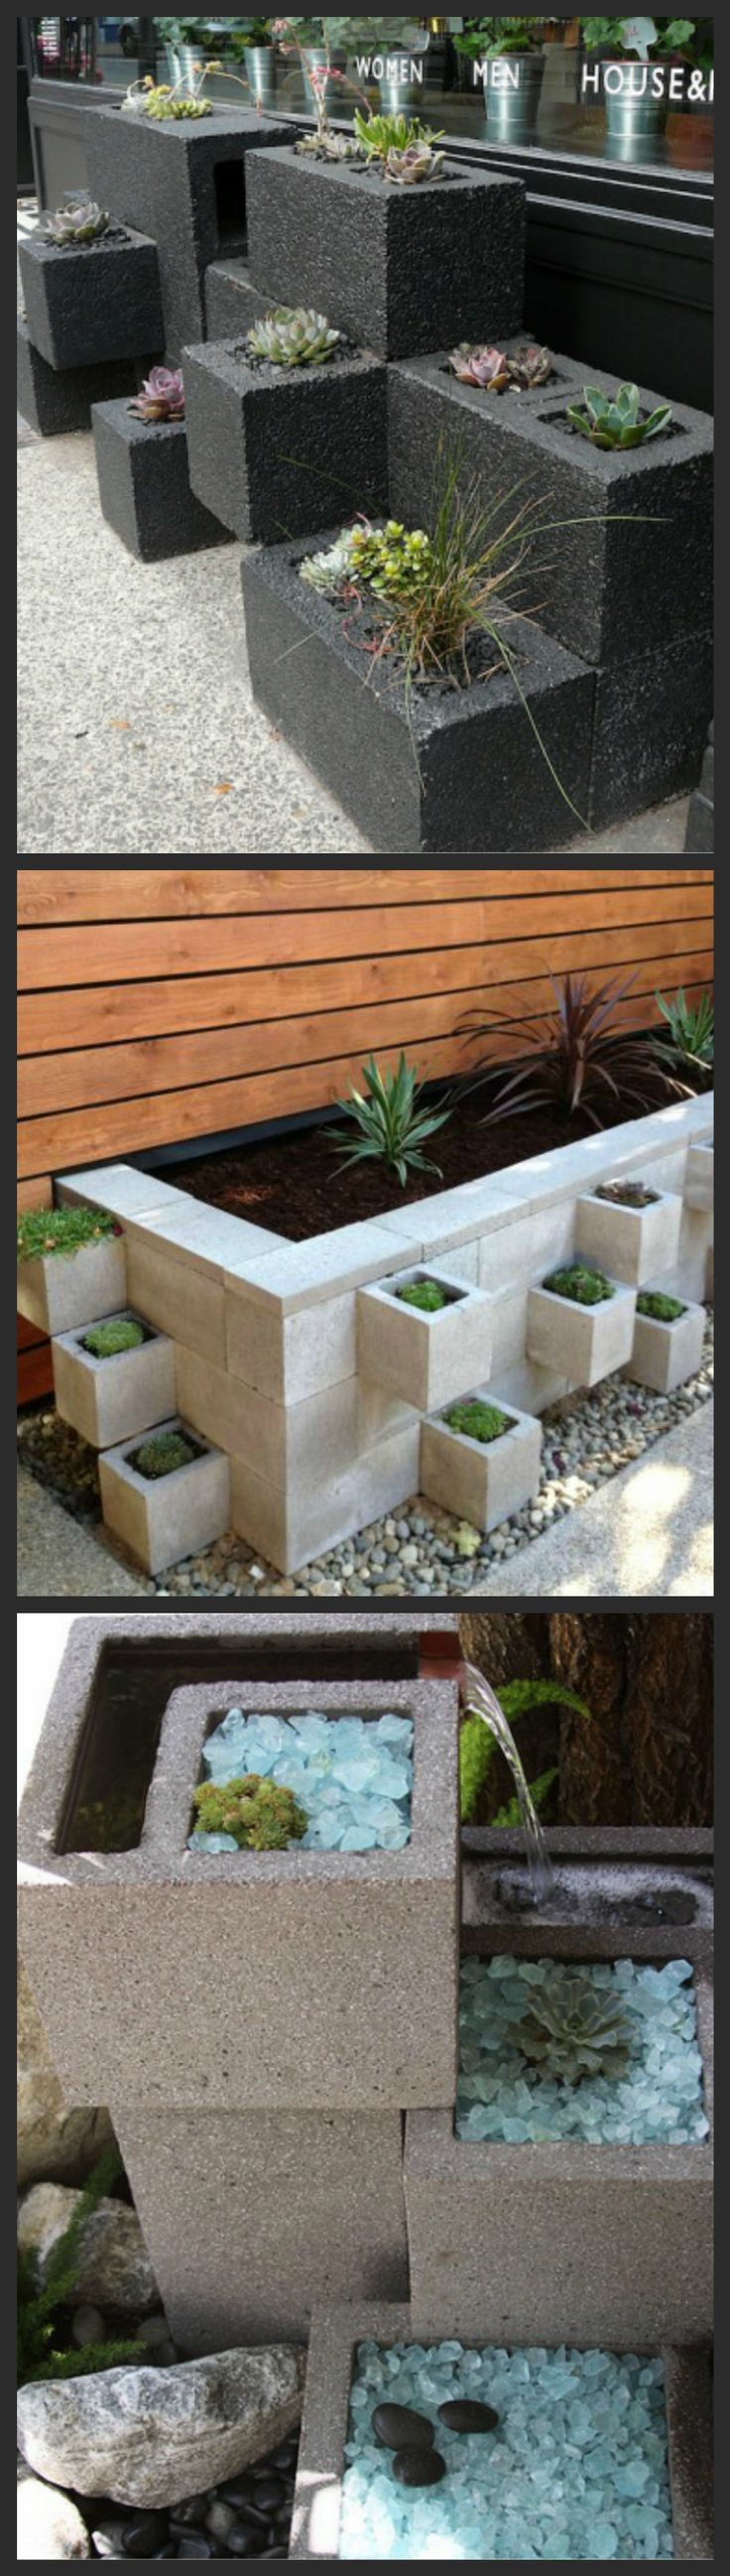 These urban gardens are...straight-forward enough to make with some liquid nails, gravel, soil, some mesh or other blocking material for the open bottoms, and easy-to-care for succulents and ornamental grasses | via Saf Affect